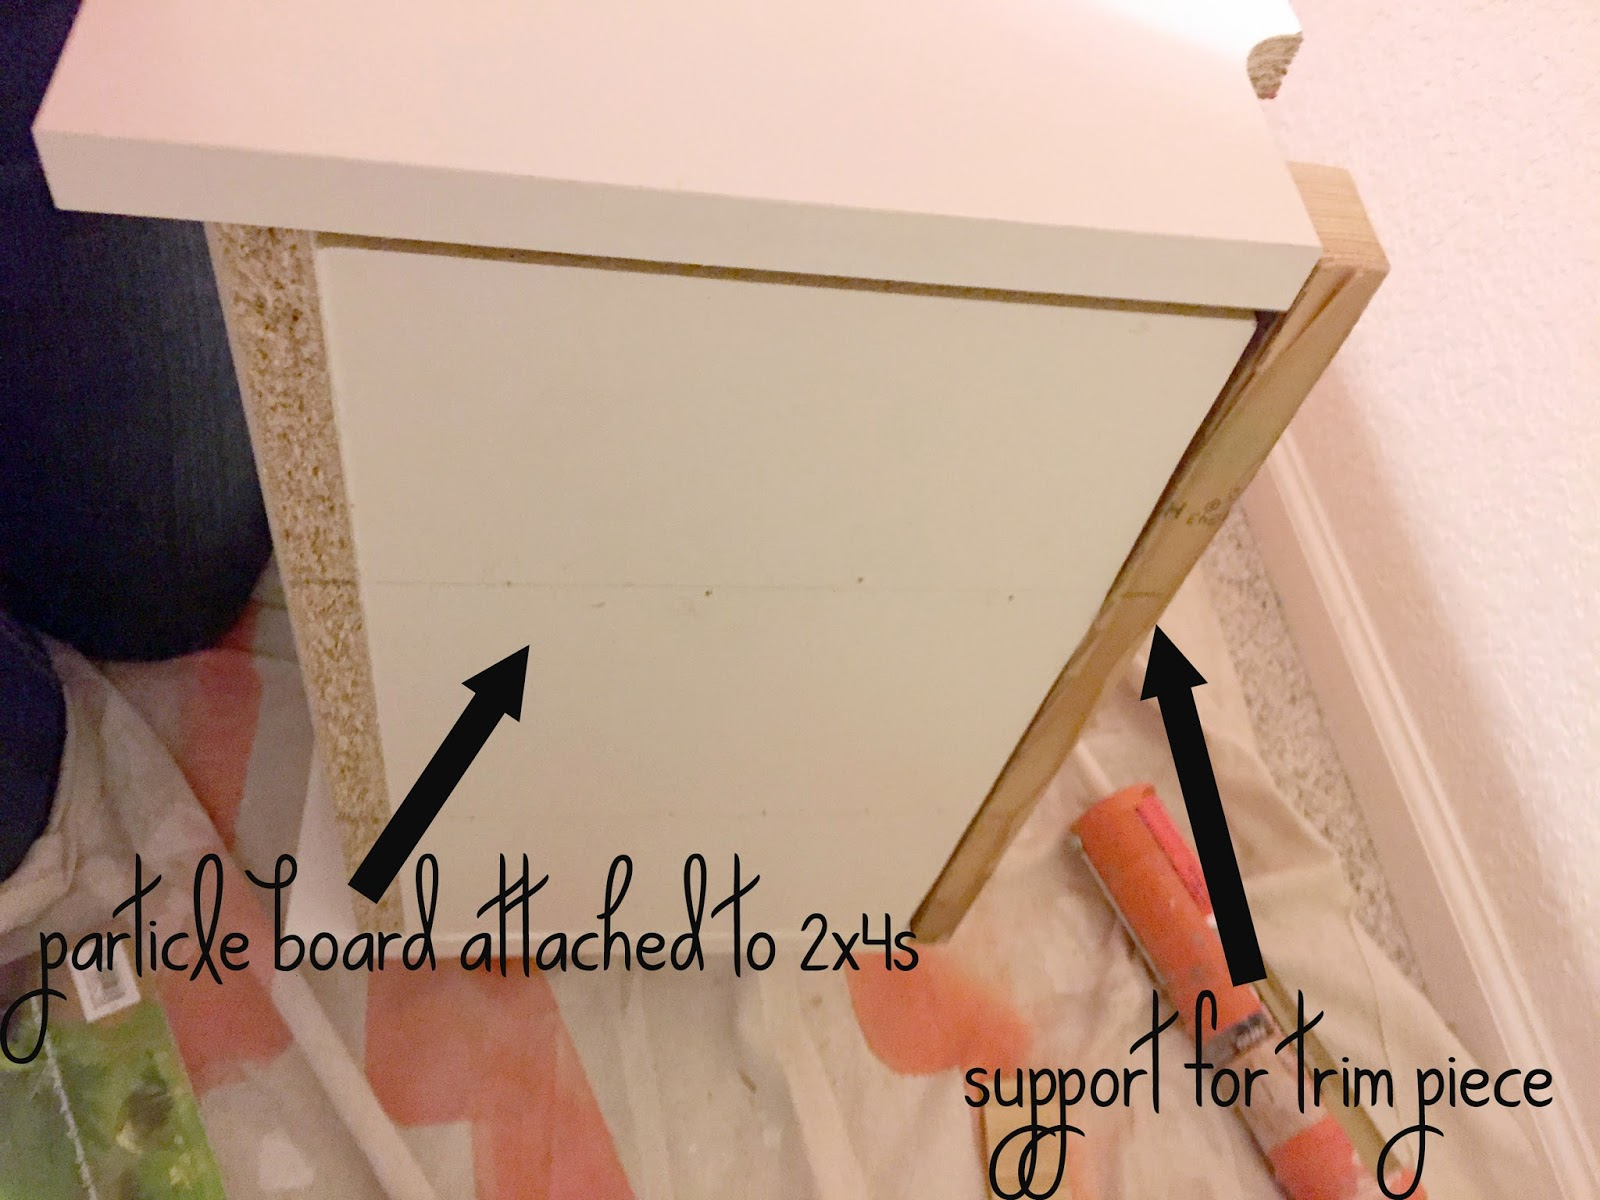 Next I Added Some Painted Corner Molding To The Edges And Top Of Bookcase Cover Exposed Edge Particle Board